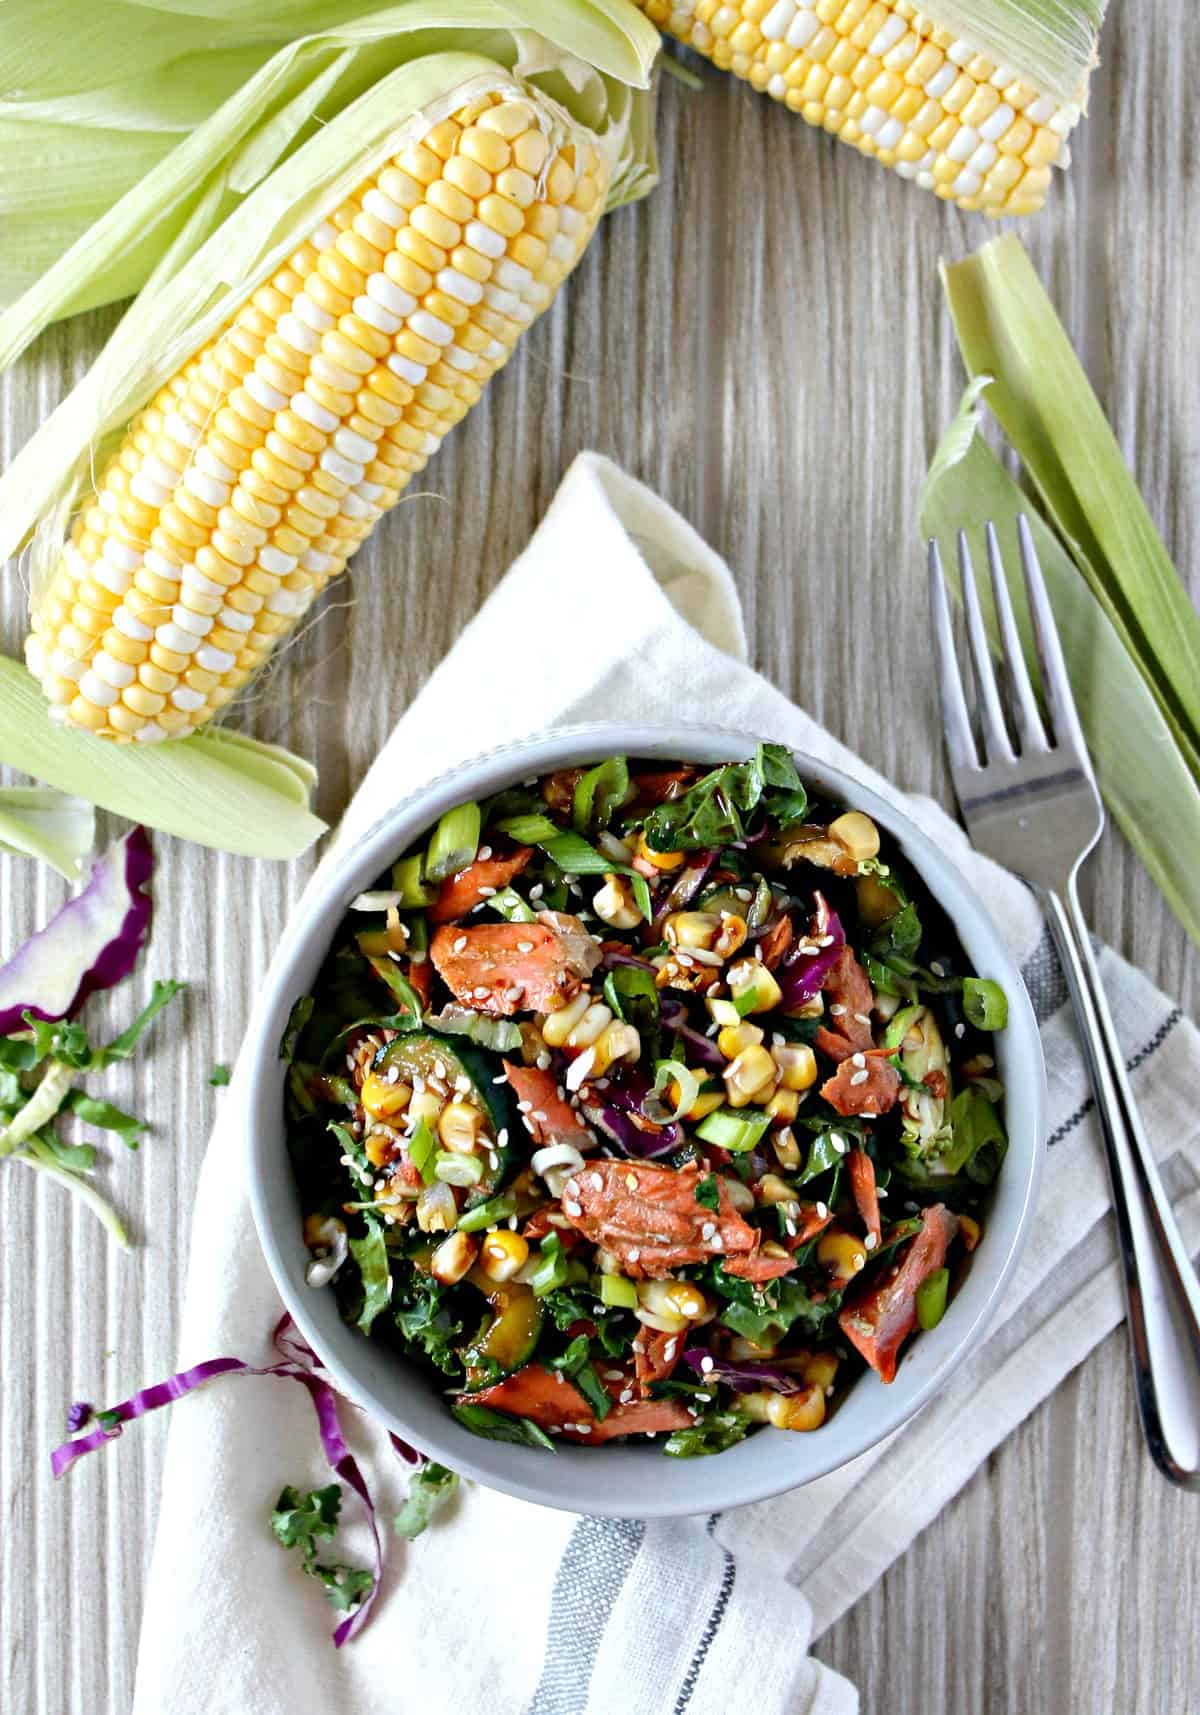 Asian-Inspired Grilled Salmon, Corn & Cucumber Salad! The fresh flavors of grilled summer corn and salmon pair perfectly with cool, crisp cucumber and crunchy slaw mix. A sweet and salty vinaigrette brings this satisfying salad together.